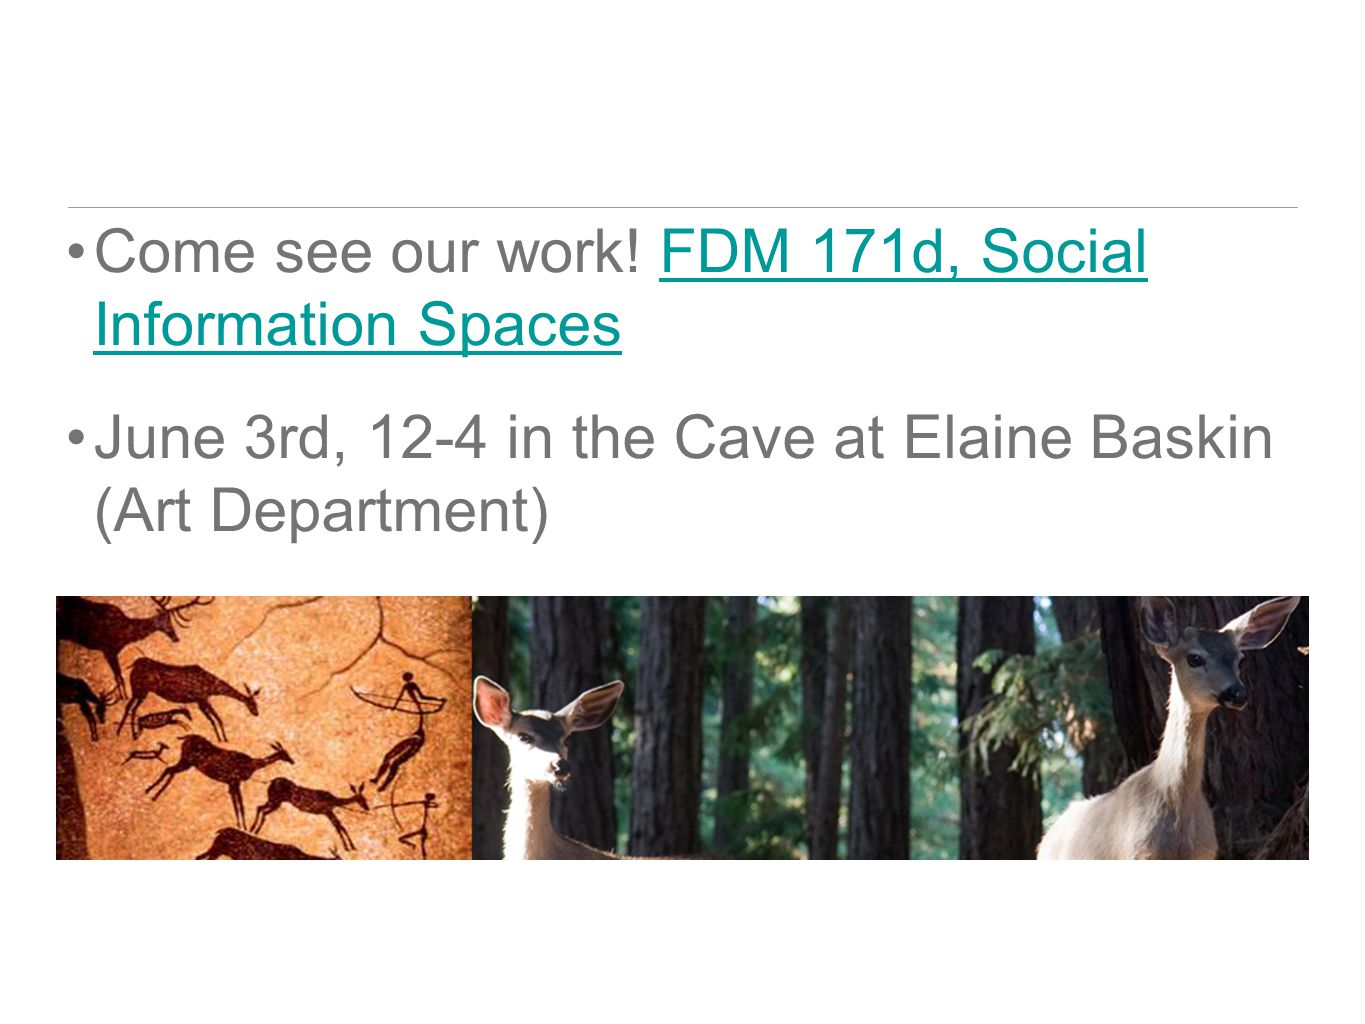 Come see our work! FDM 171d, Social Information SpacesFDM 171d, Social Information Spaces June 3rd, 12-4 in the Cave at Elaine Baskin (Art Department)